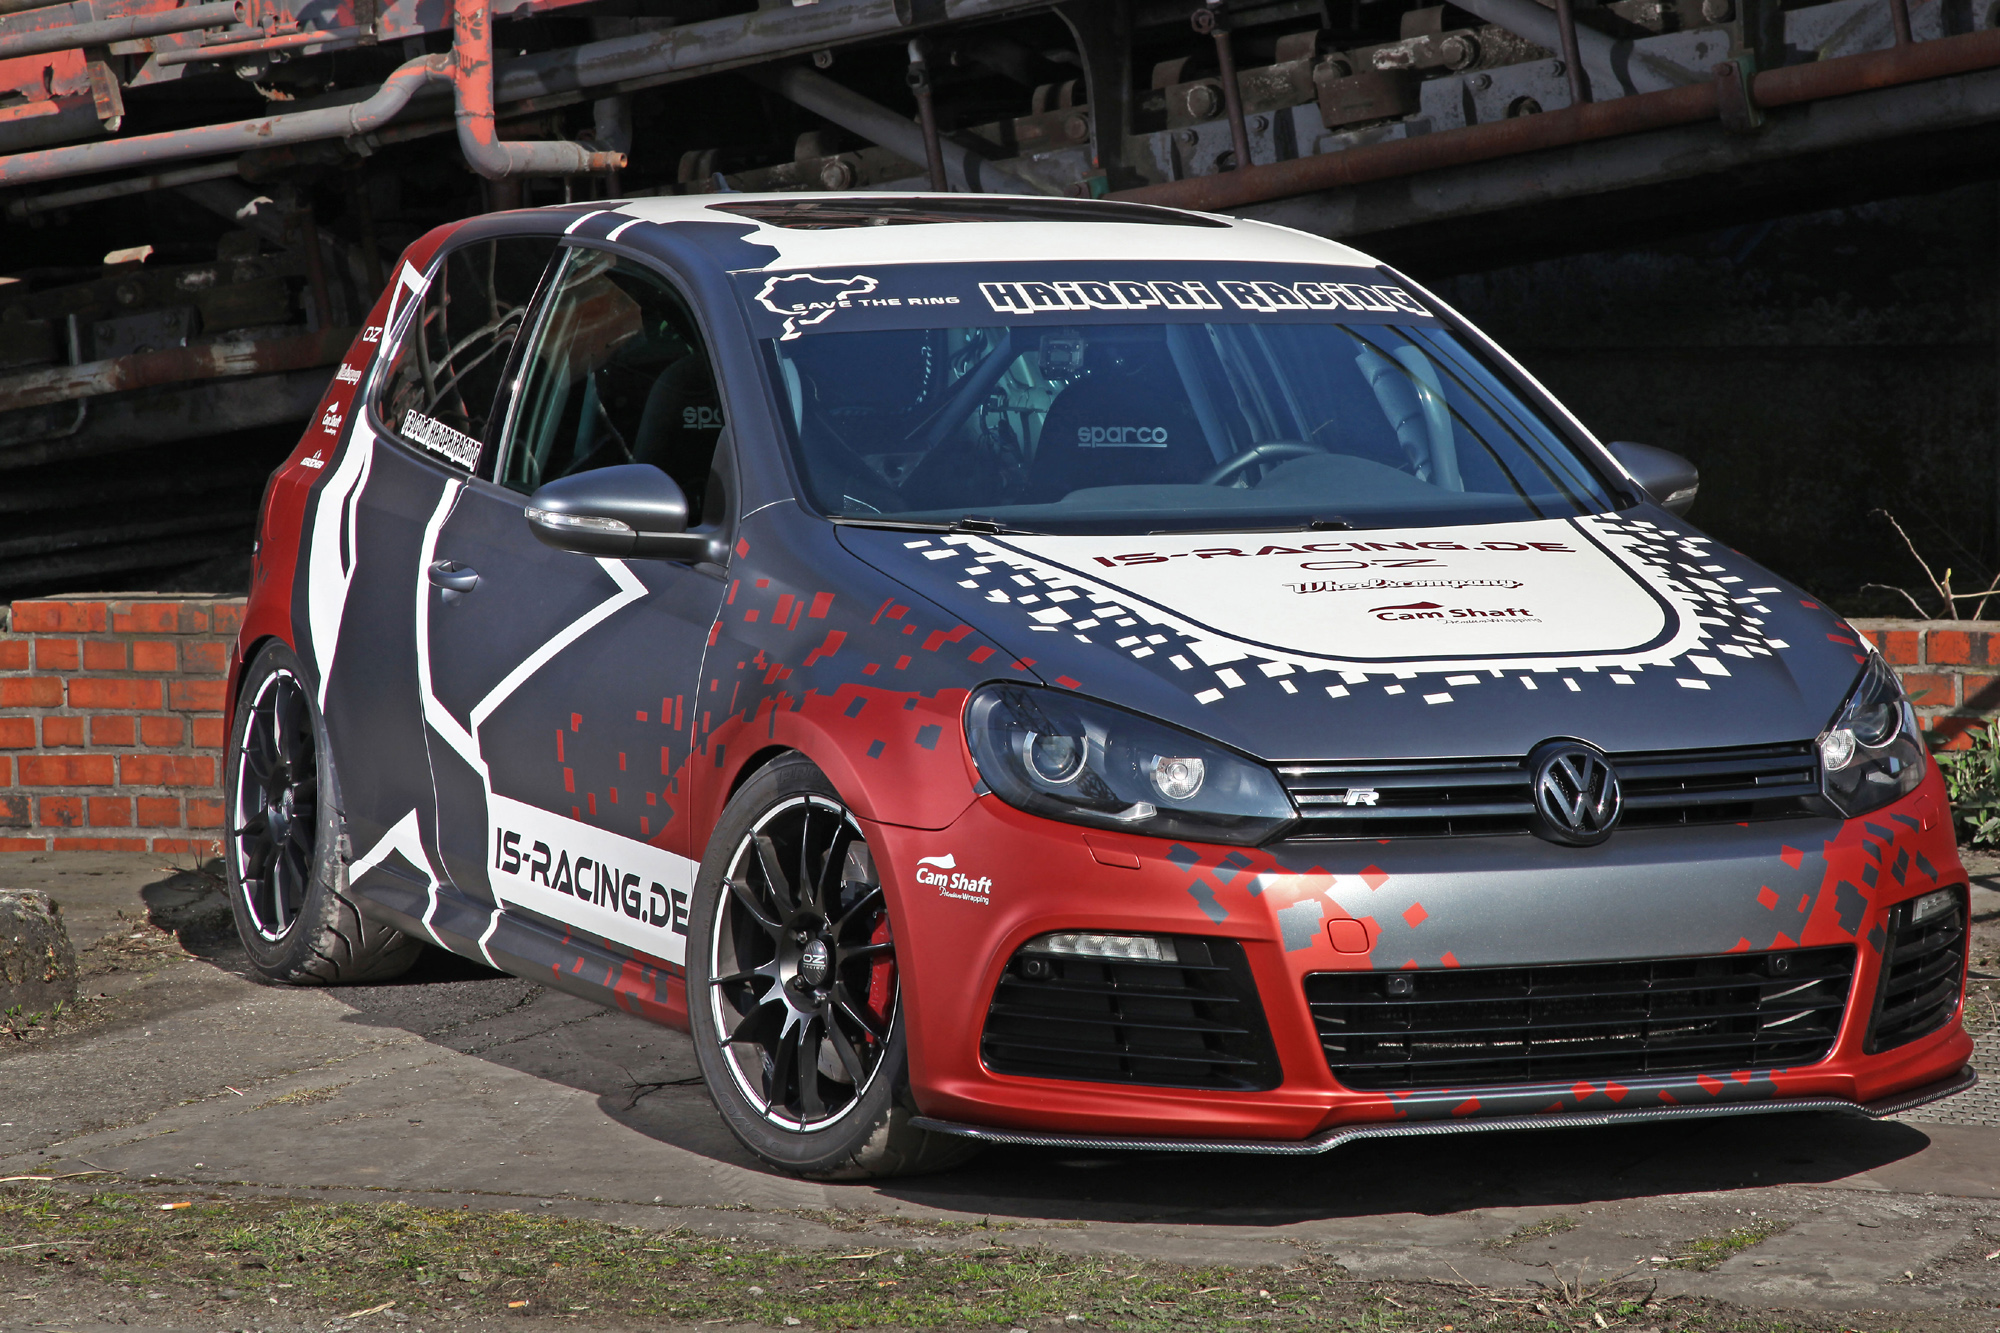 haiopai racing vw golf r von daniel tracktools. Black Bedroom Furniture Sets. Home Design Ideas